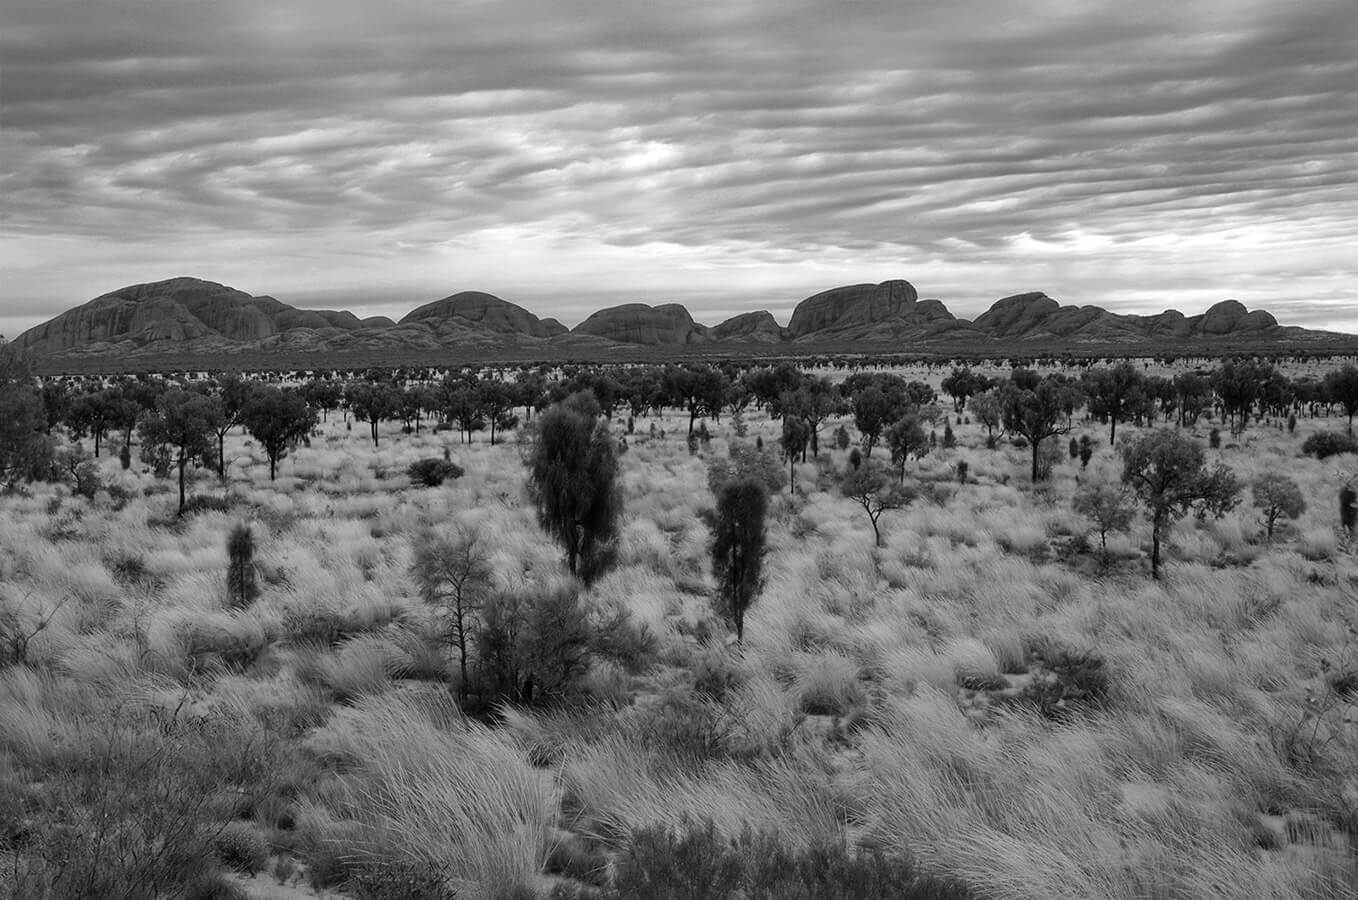 Kata Tjuta Black and White Landscape by Carrie Morgan